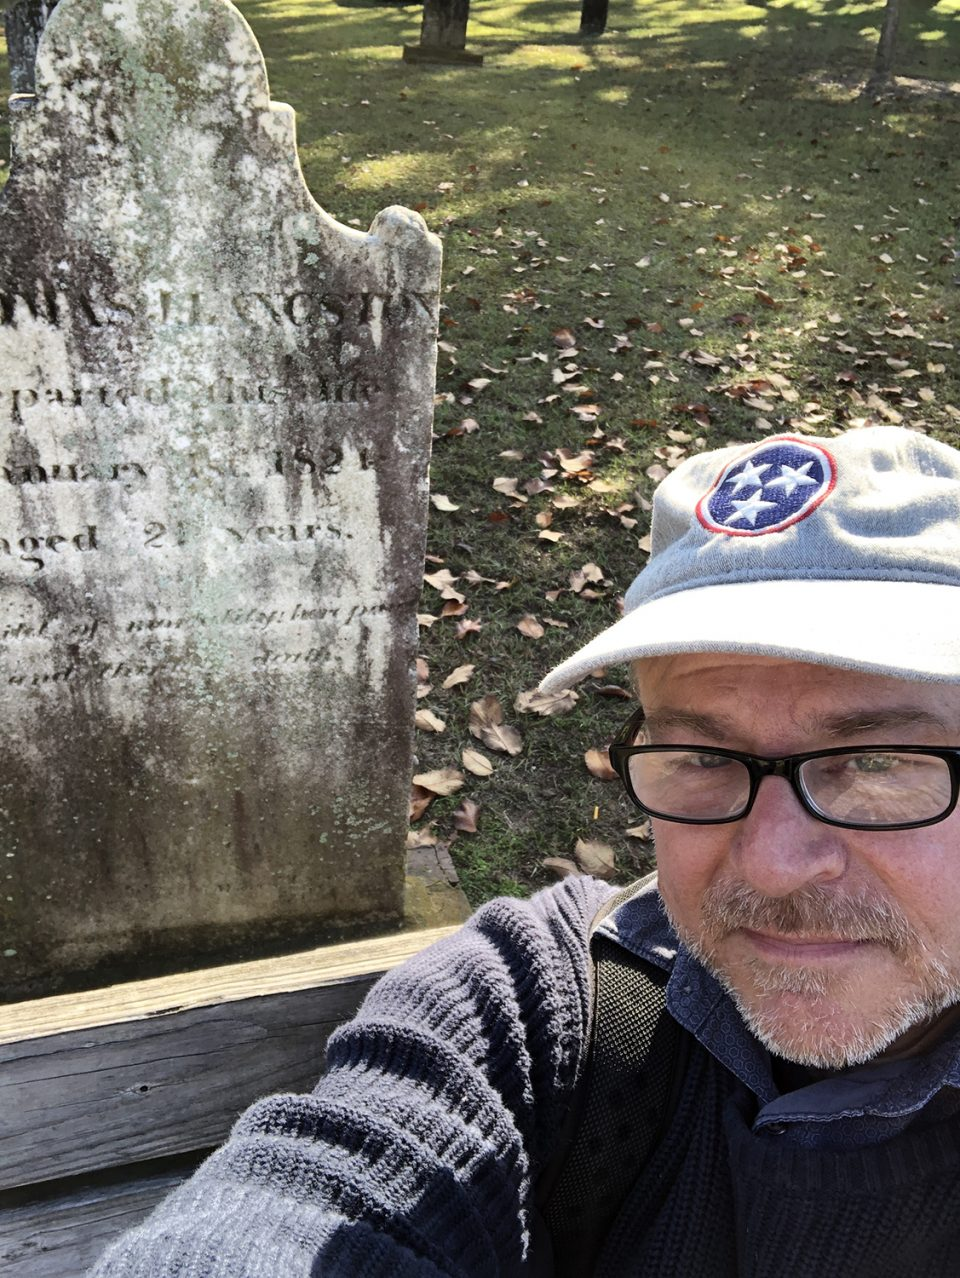 In Colonial Cemetery, park benches sit alongside very old tombstones. Here I am with the marker for Thomas J. Langston, who departed this world in 1824.